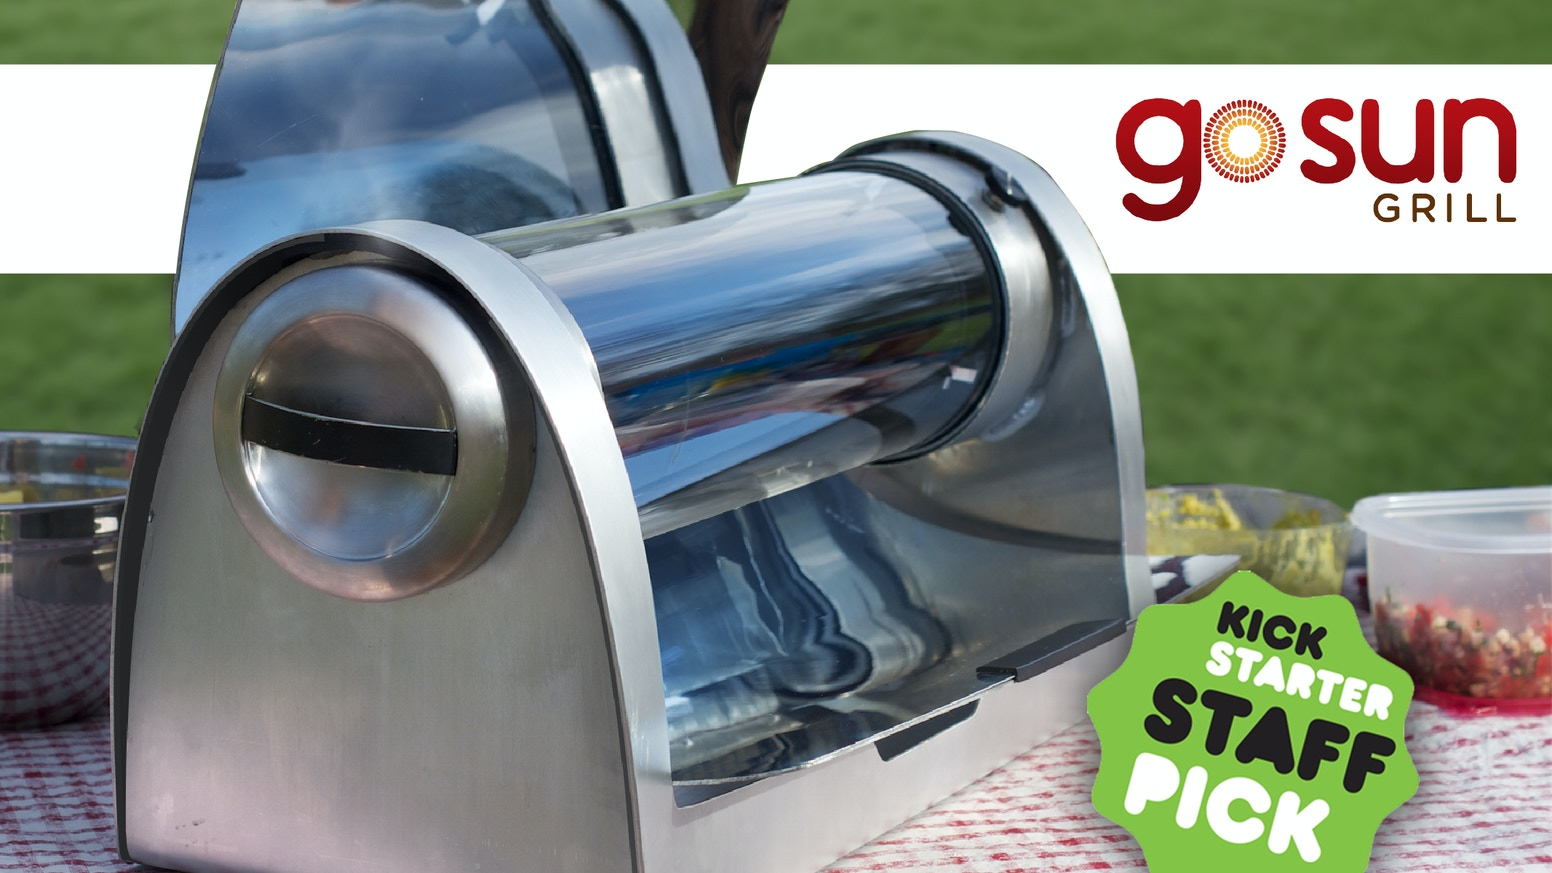 Gosun Grill A Breakthrough Solar Oven That Cooks At Night By Fusion 700 Marine Stereo Wiring Diagram Patrick Sherwin Kickstarter